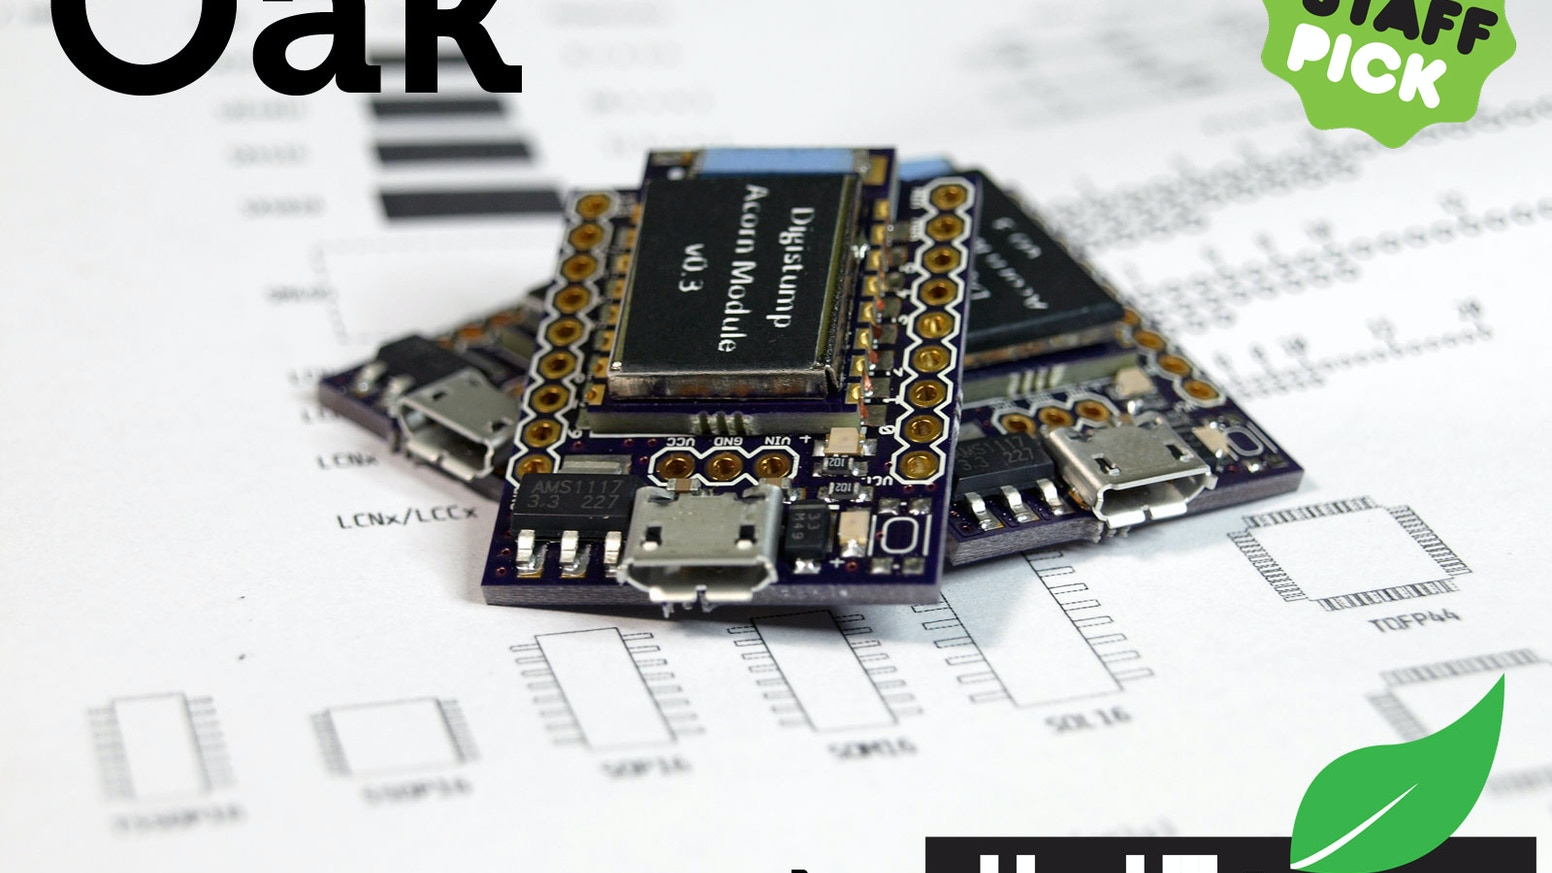 Oak By Digistump Wi Fi For All Things Arduino Compatible Erik Digital Thermometer Using Electronic Circuits And Diagram The Cheap Tiny Cloud Enabled Dev Board